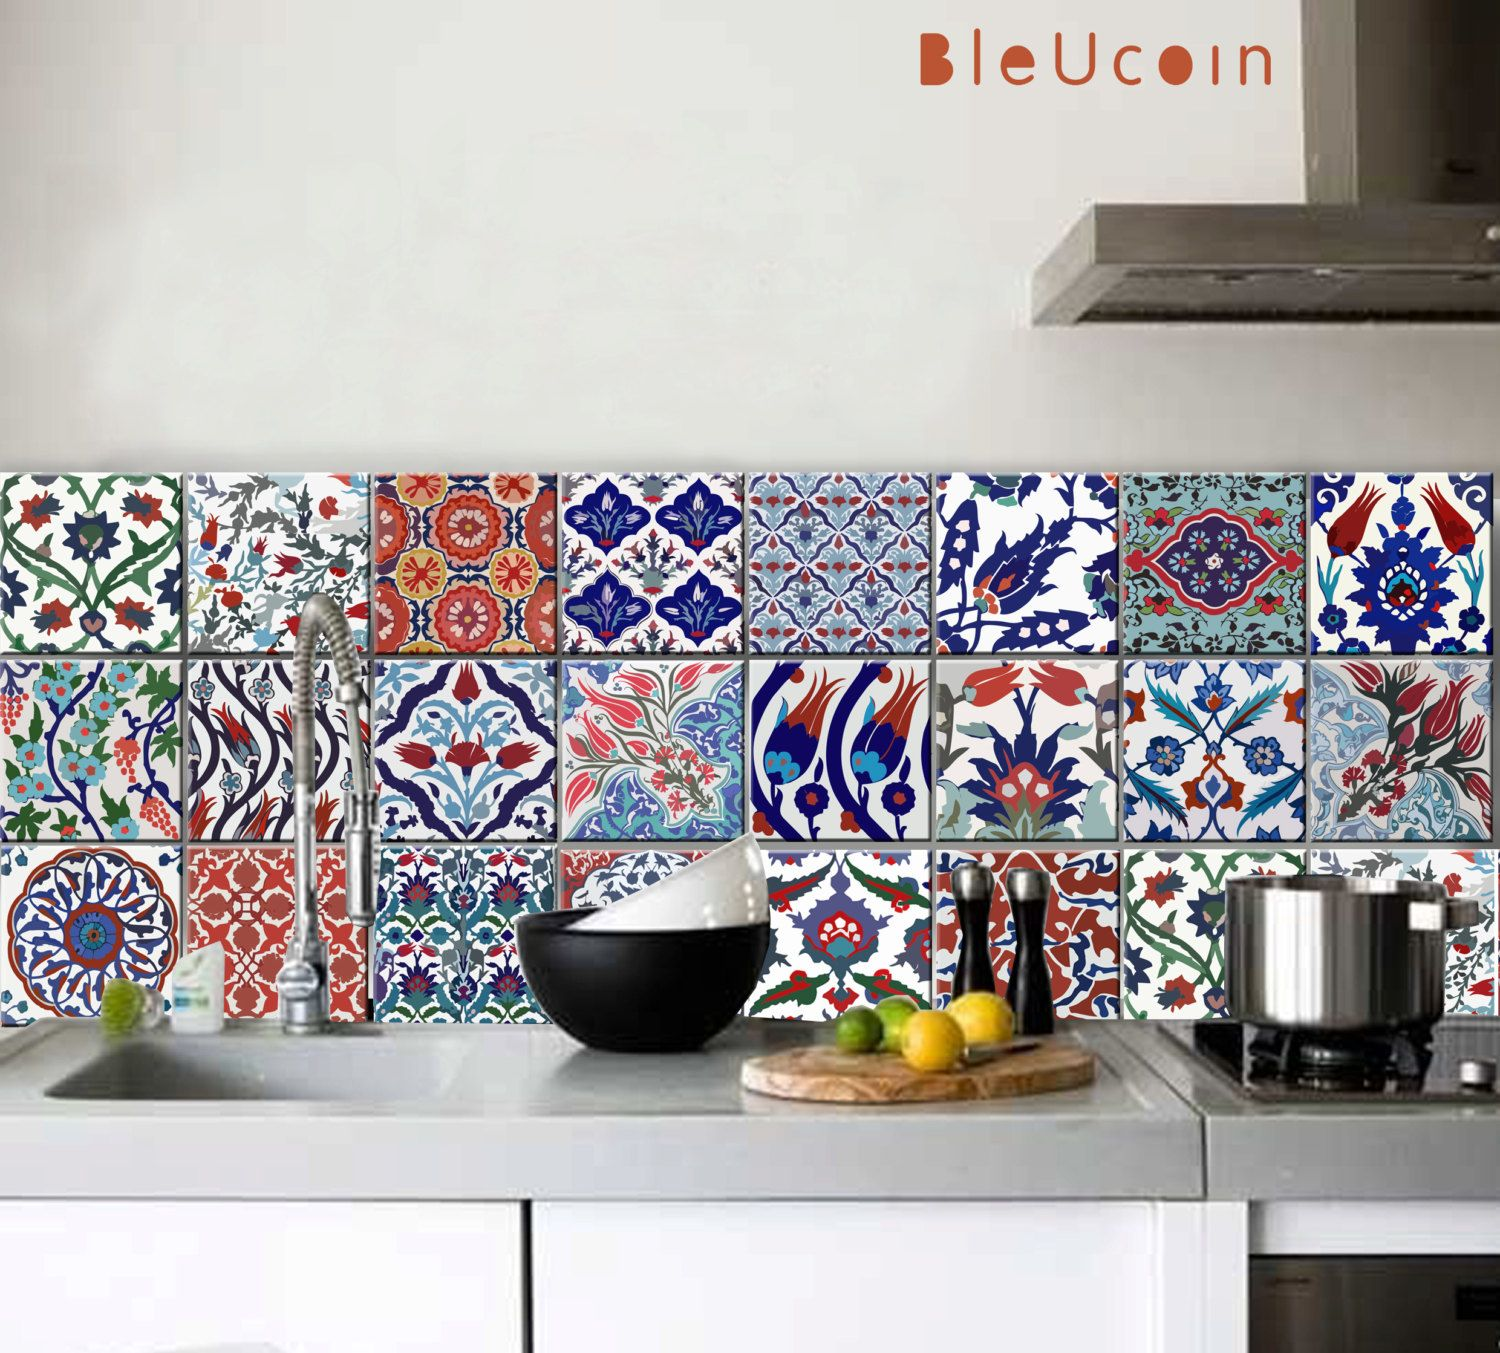 Kitchen/ Bathroom Turkish Tile/wall Decals 22designs By Bleucoin